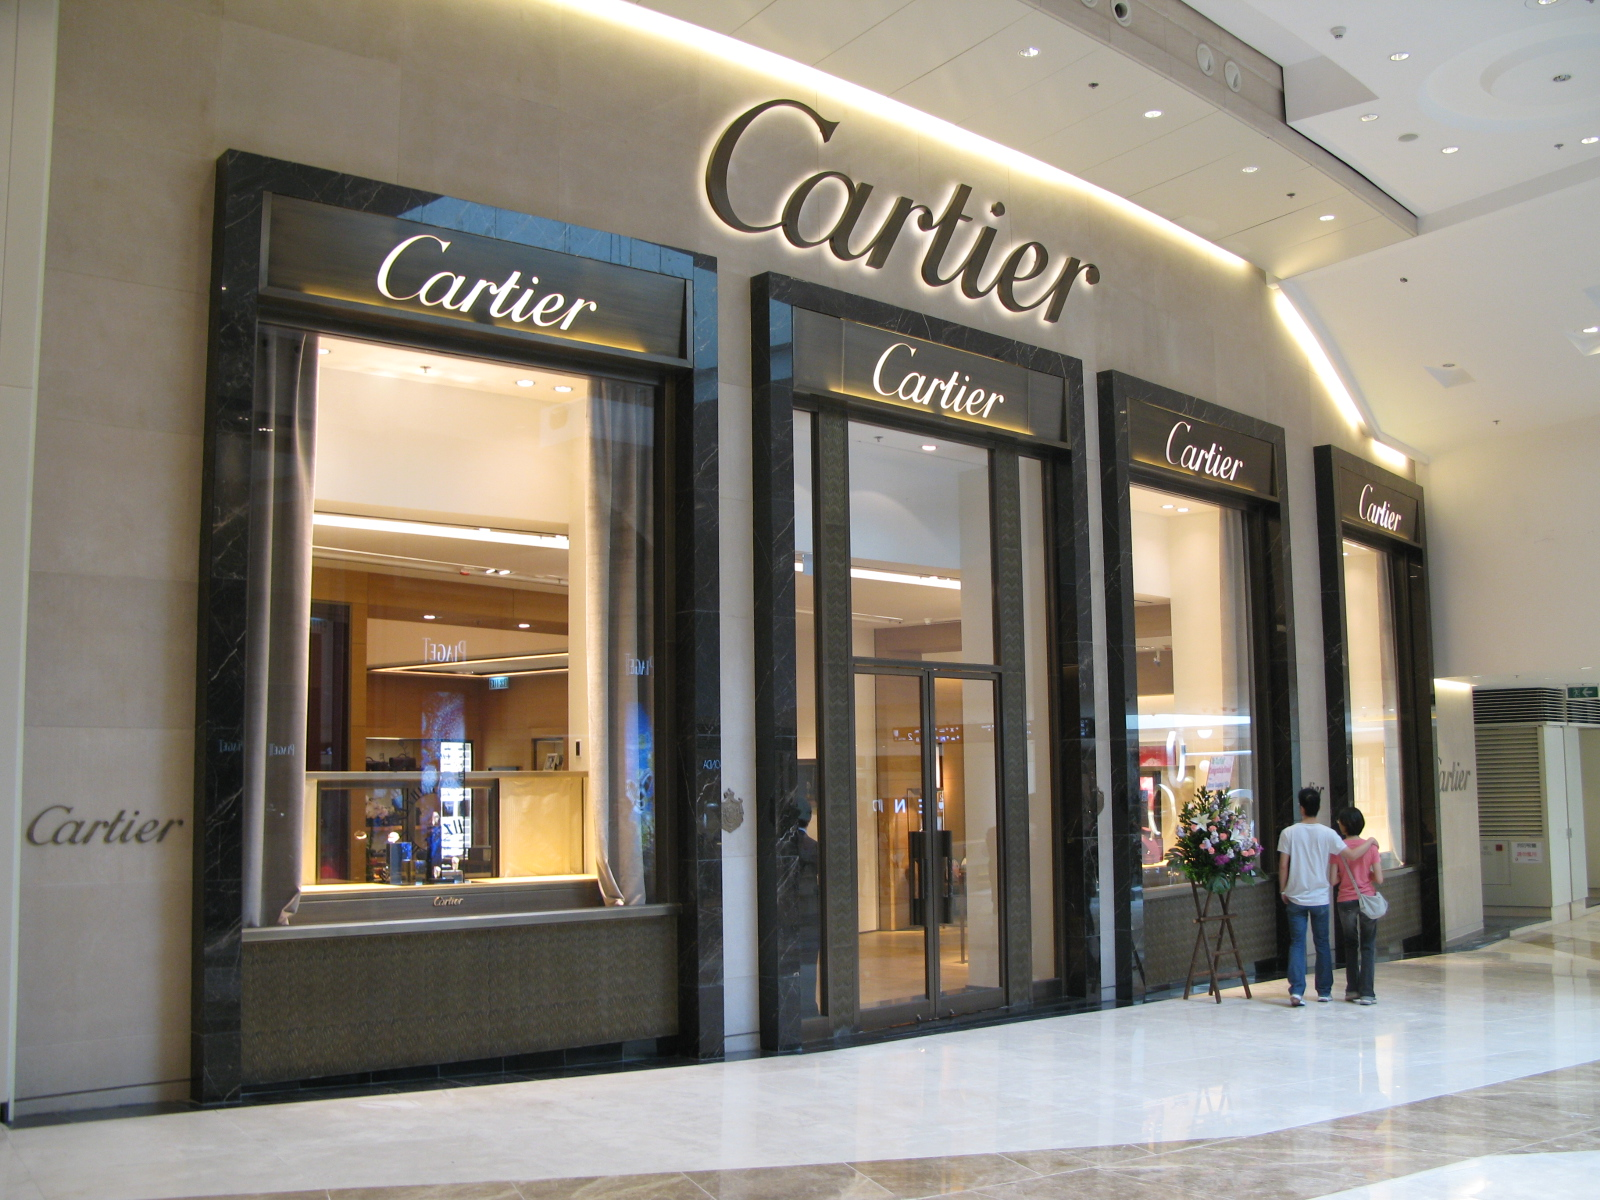 loan against, pawn or sell your fine Cartier diamond jewelry to us